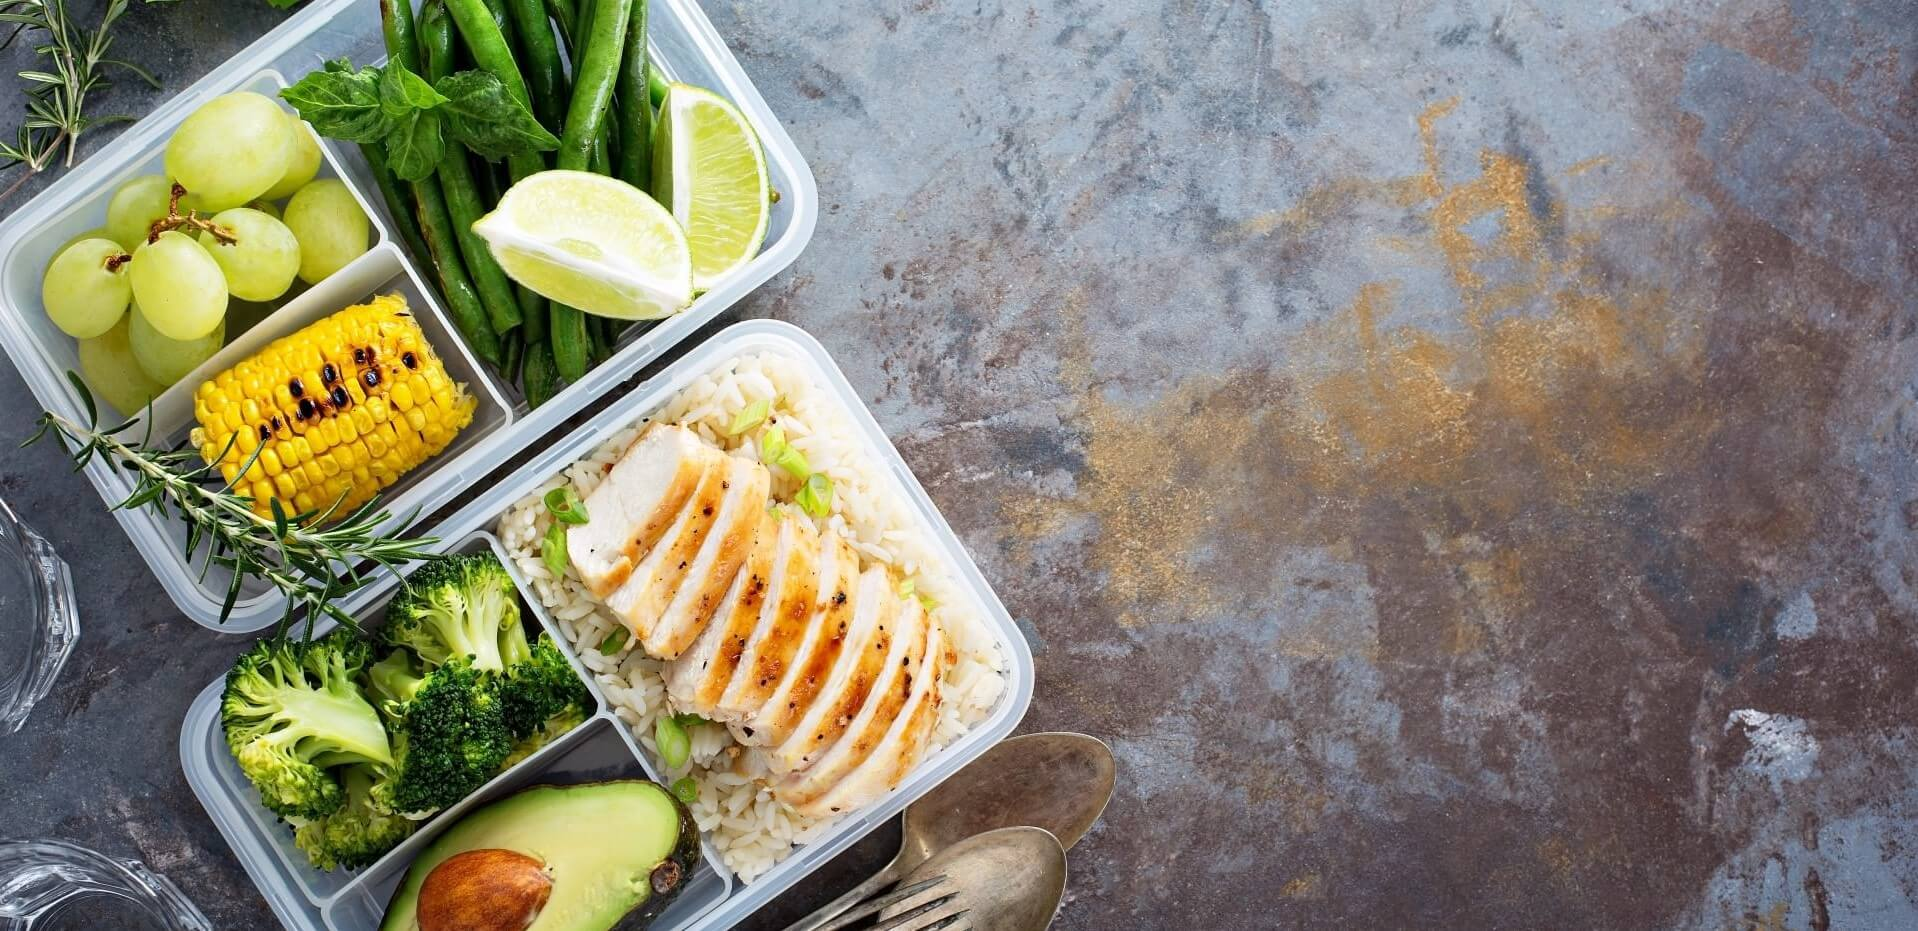 7-Day Formula To Make Meal Planning A Daily Habit